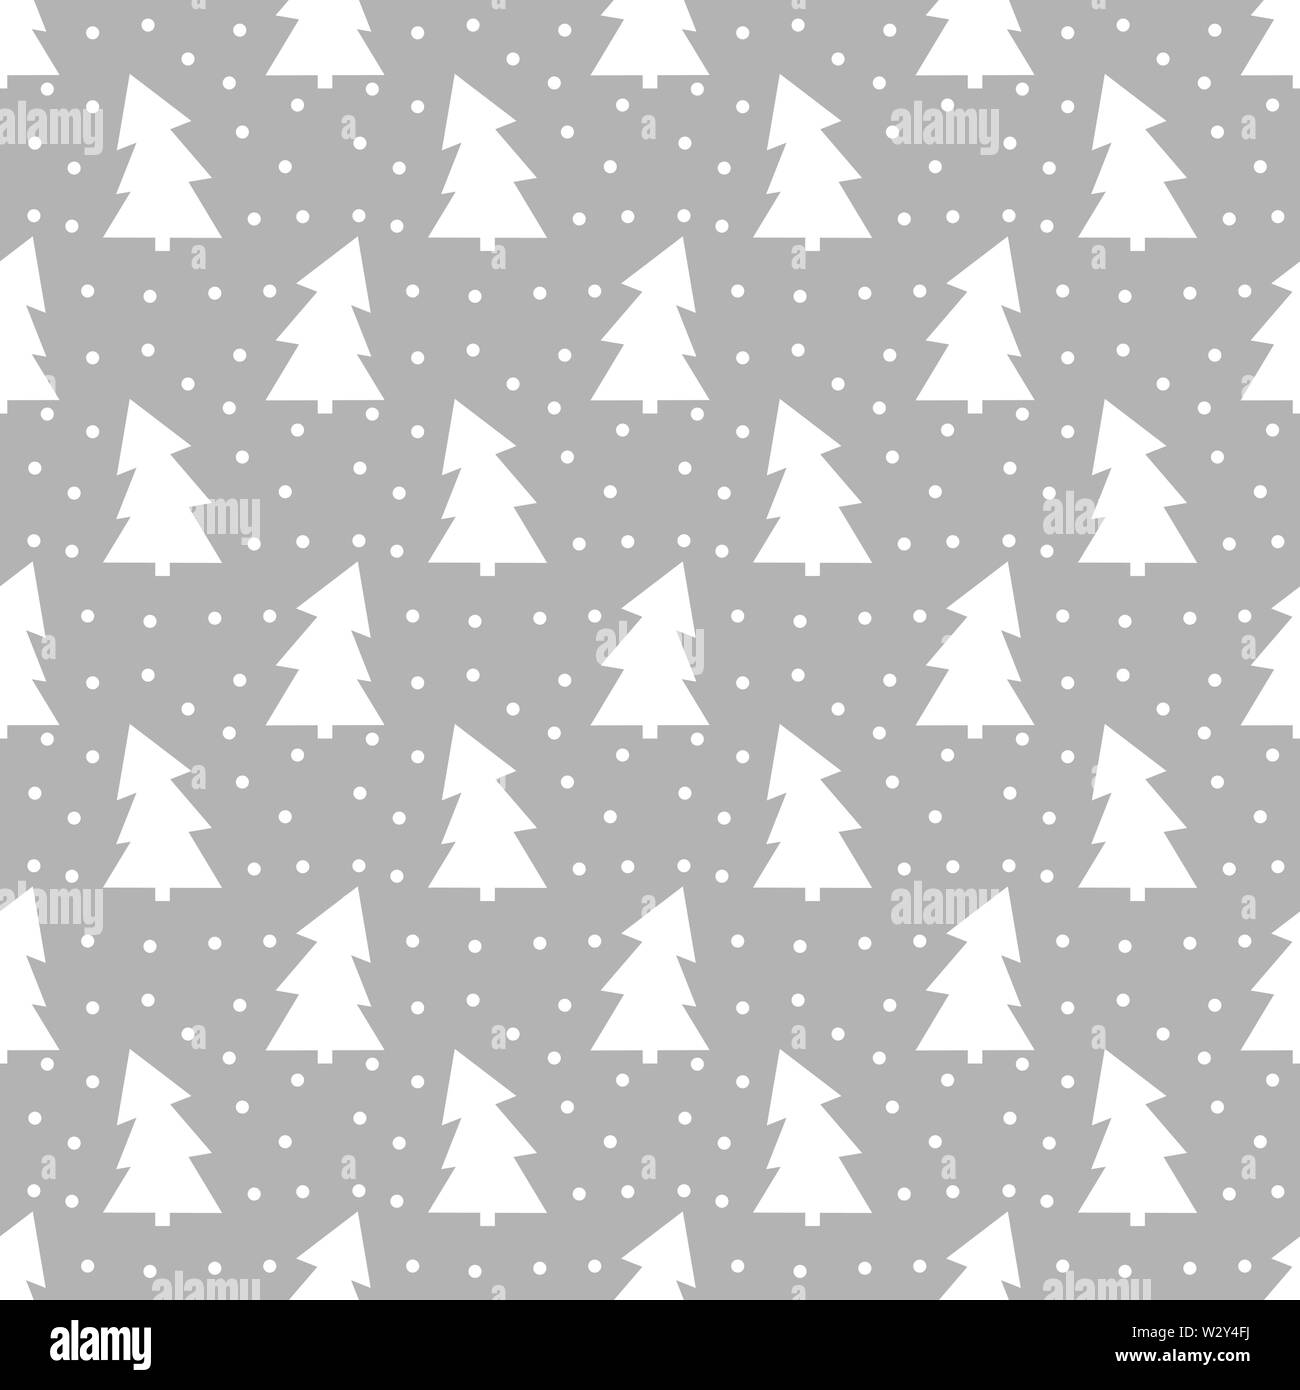 Winter Christmas trees pattern, grey backdrop. Vector illusttration - Stock Image